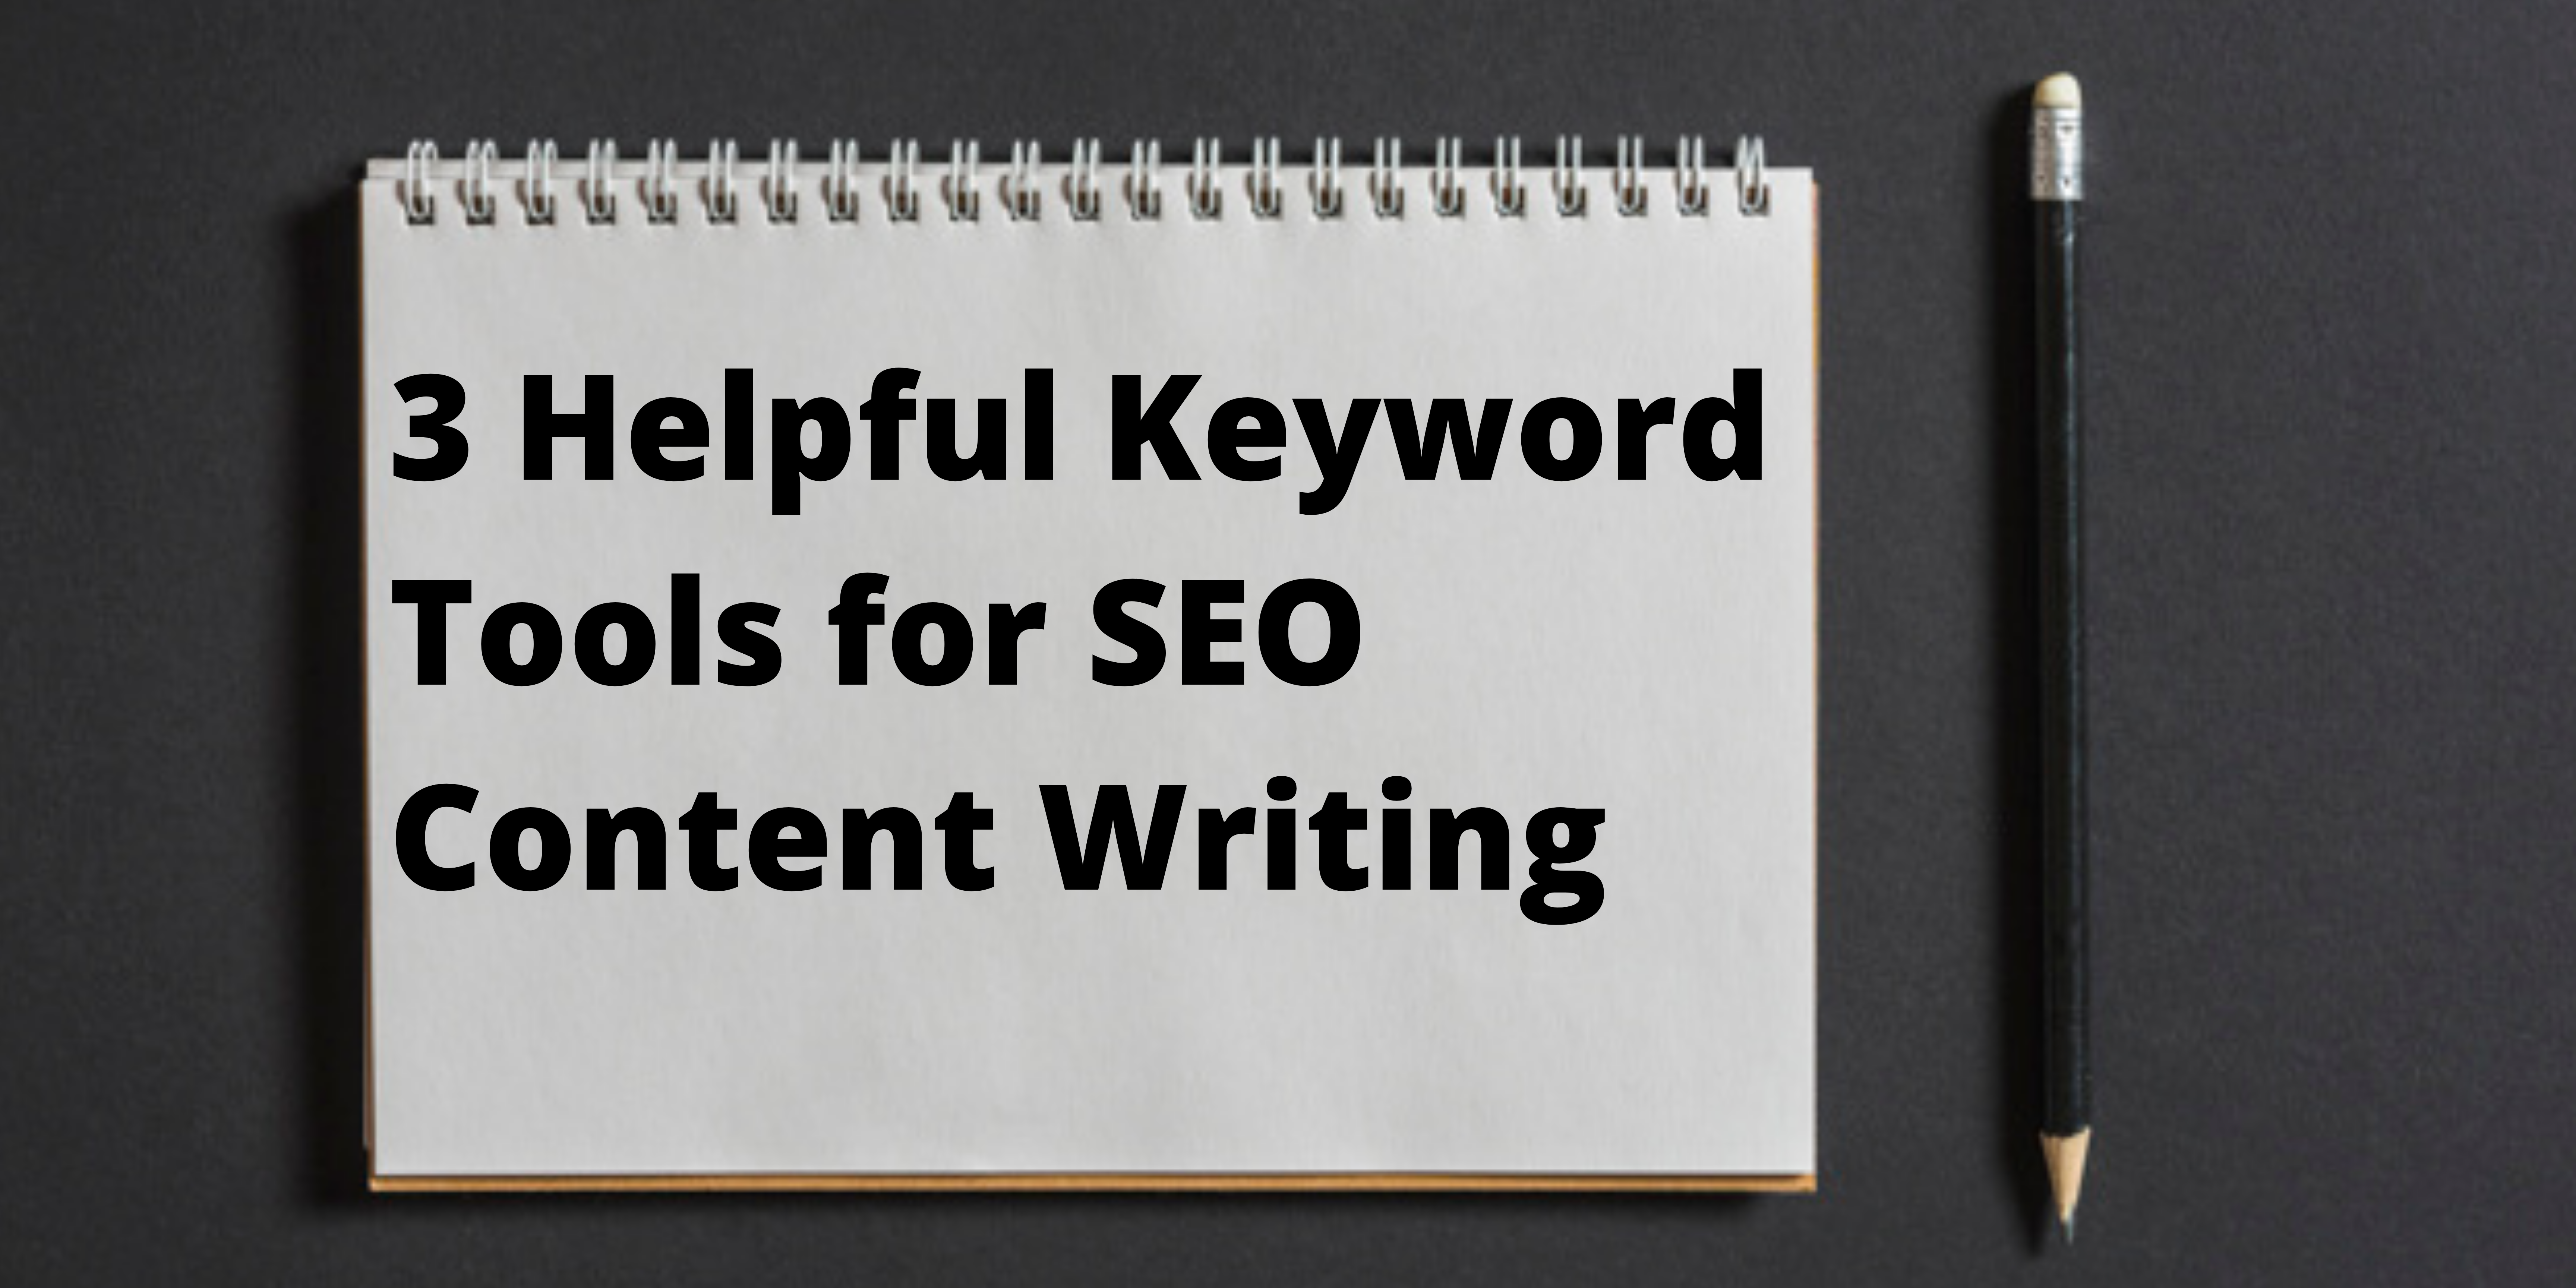 3 Helpful Keyword Tools for SEO Content Writing